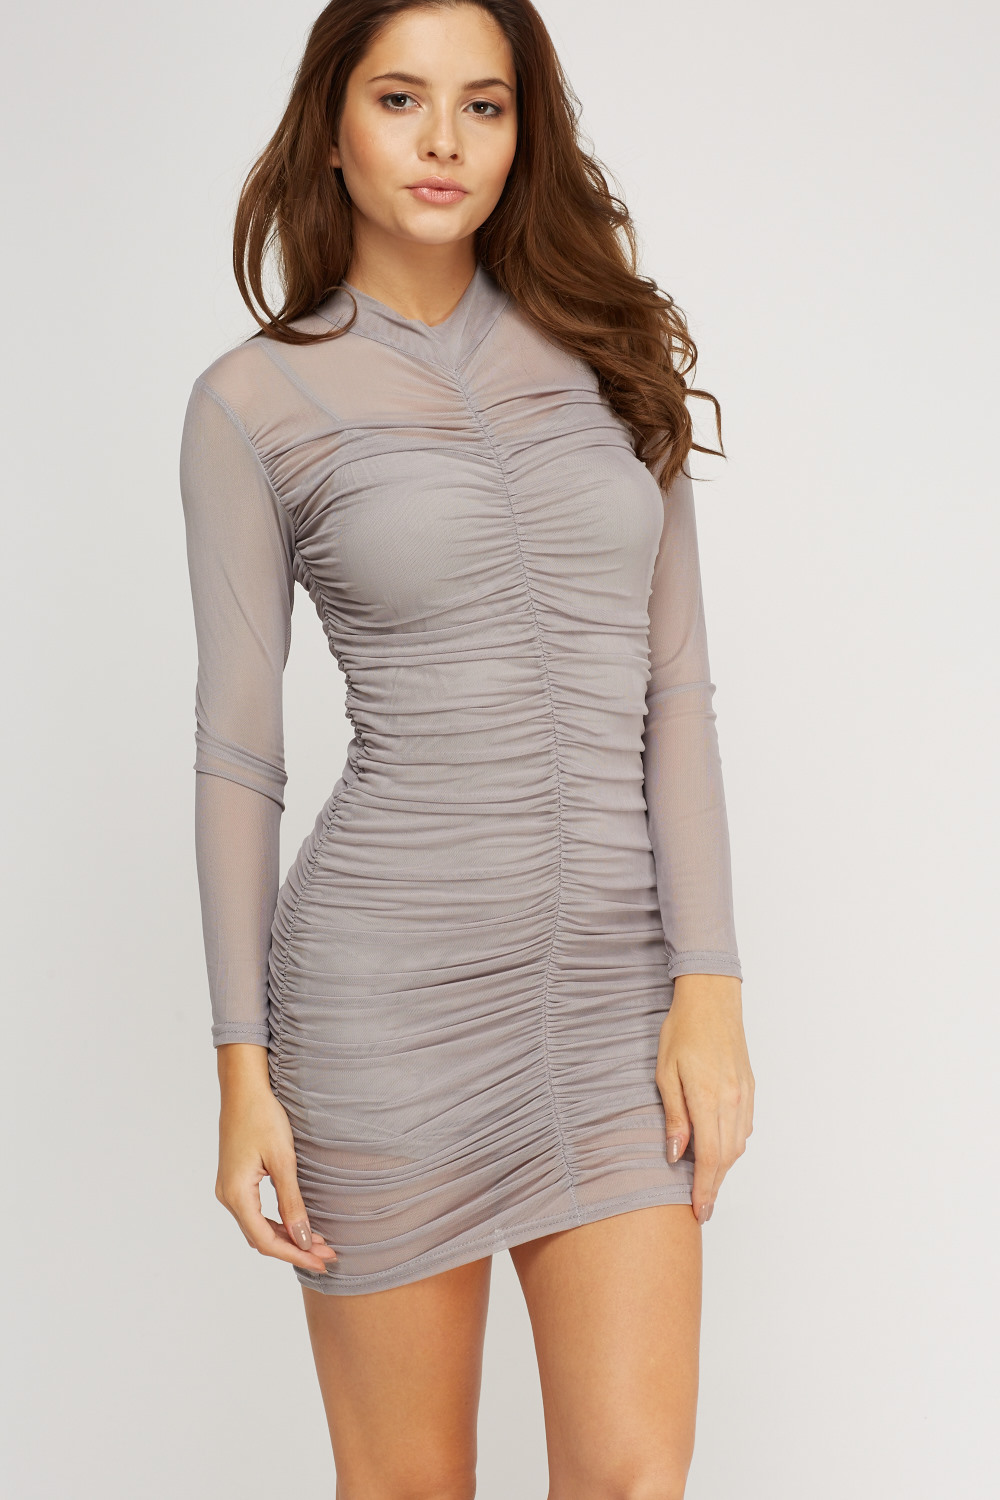 92442d37887 Mesh Overlay Ruched Dress - Just £5